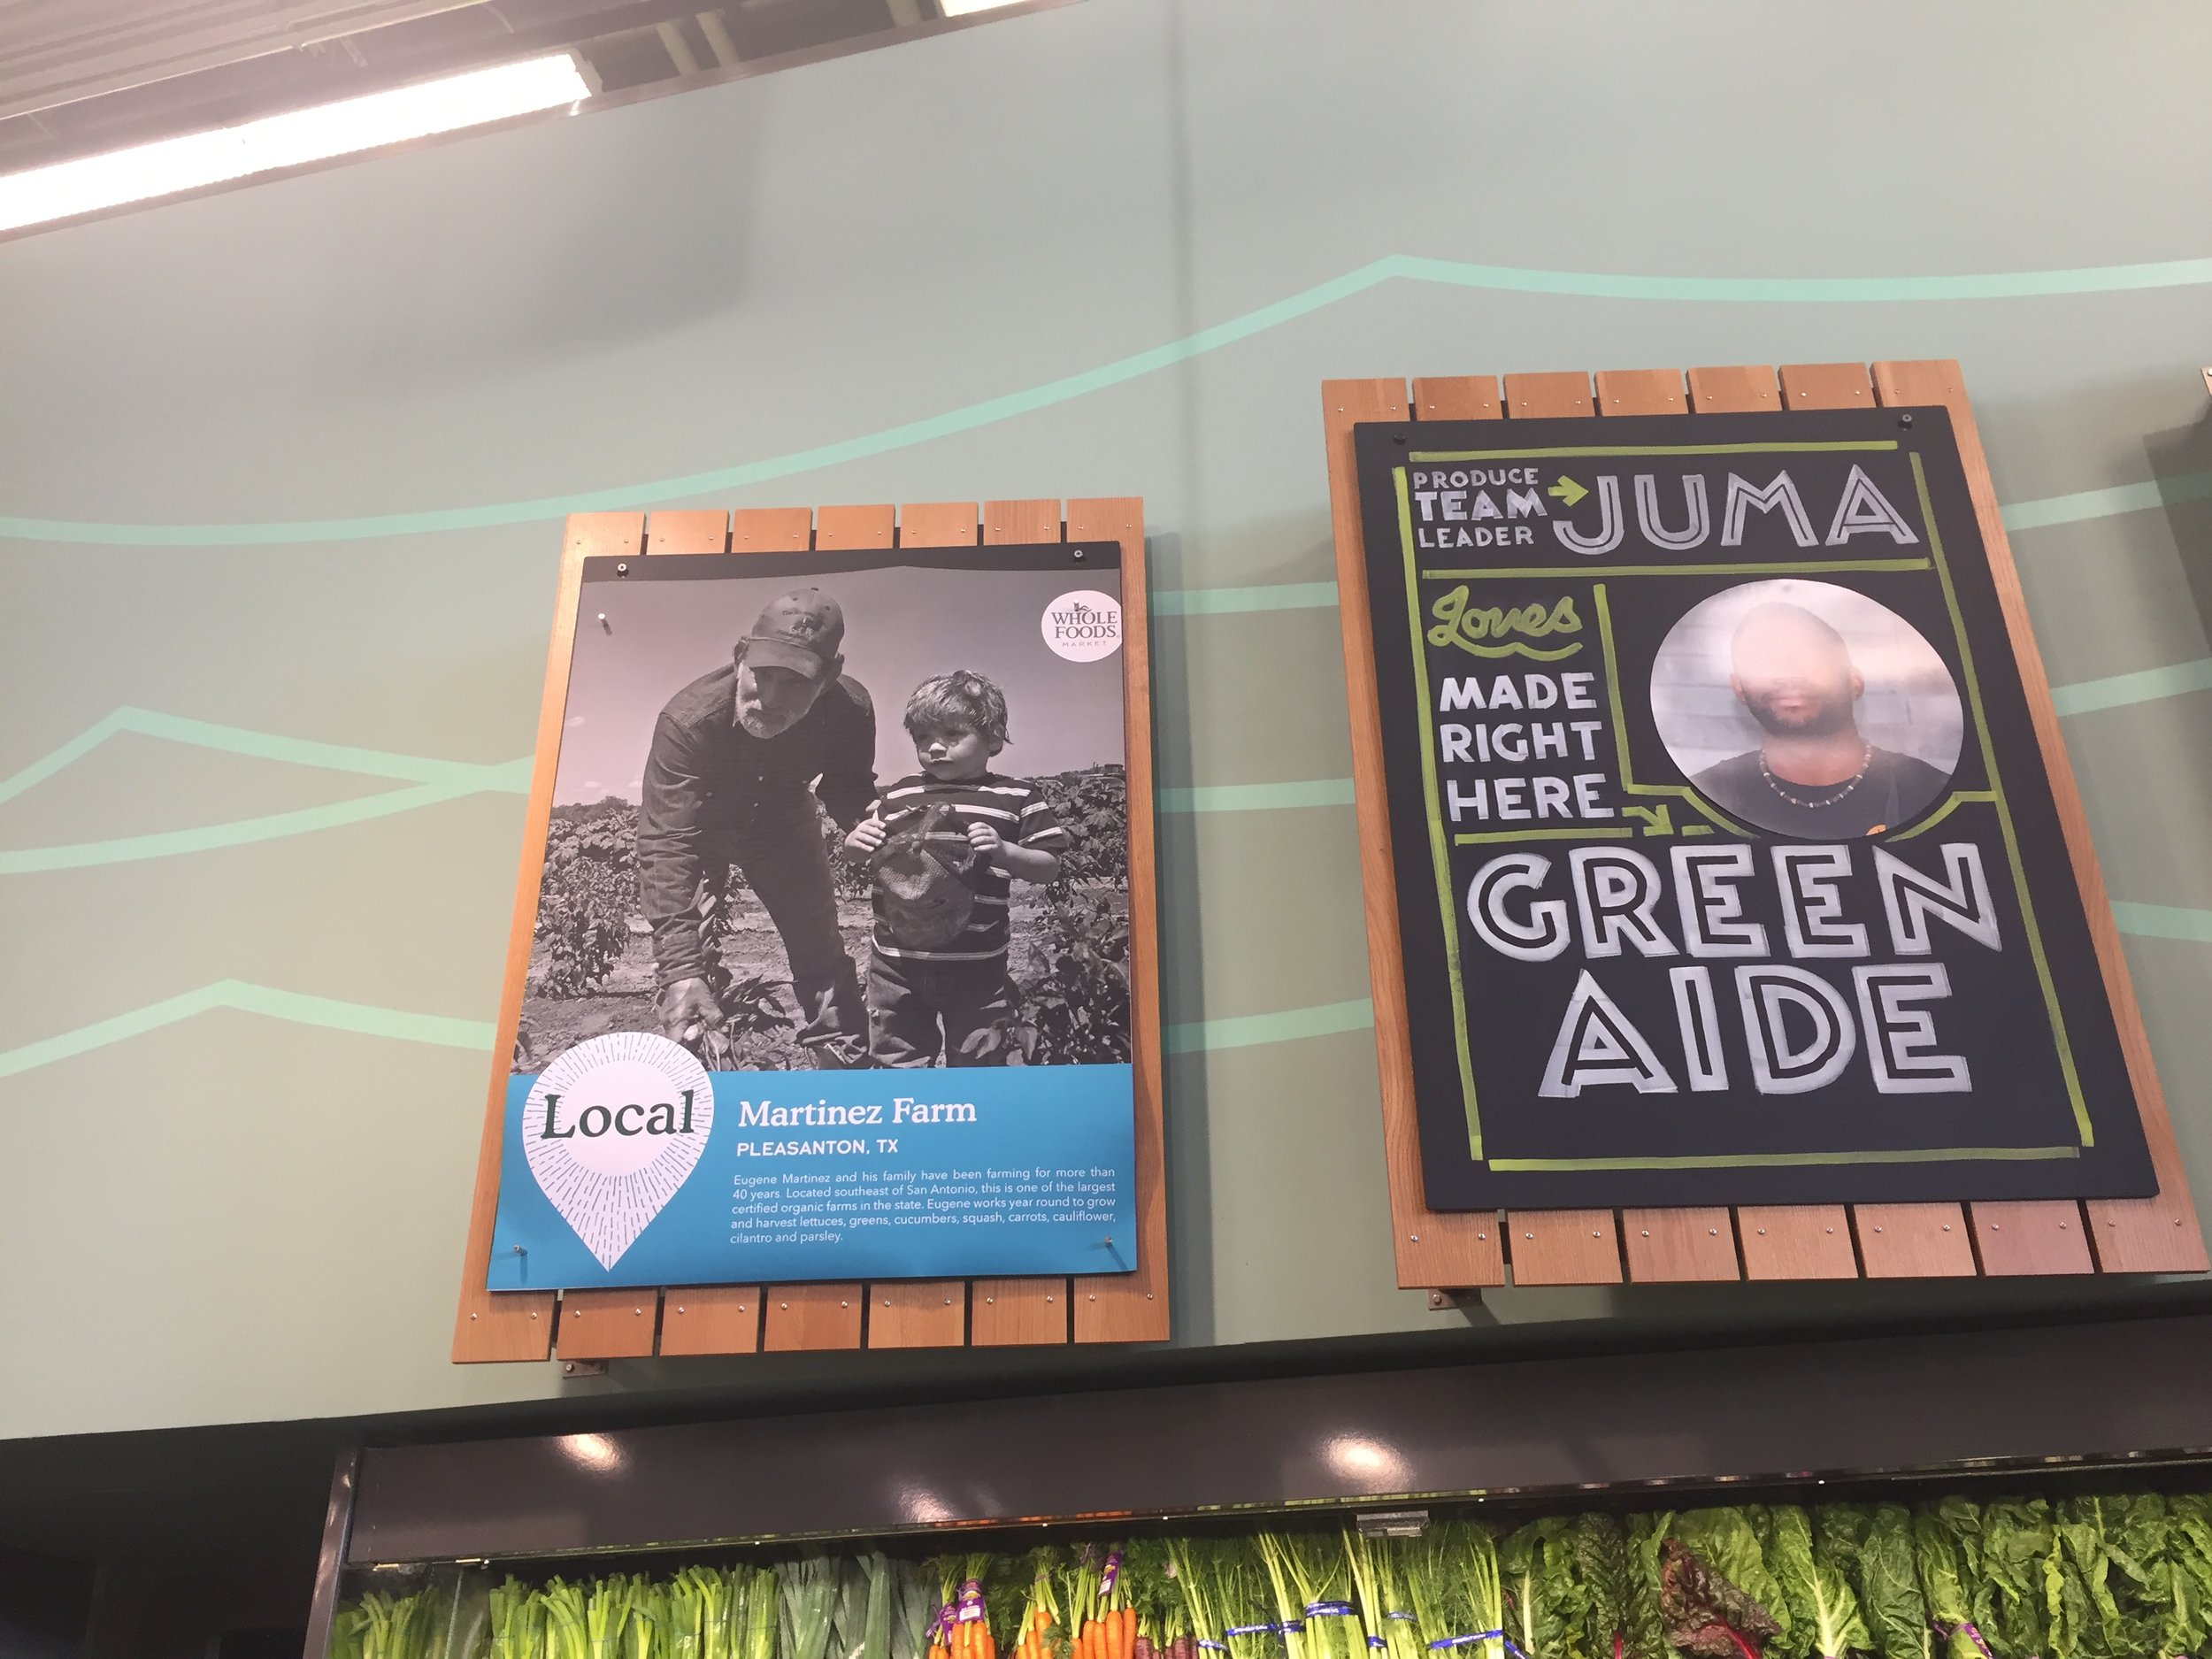 love that farmers are showcased so shoppers can see where their food comes from